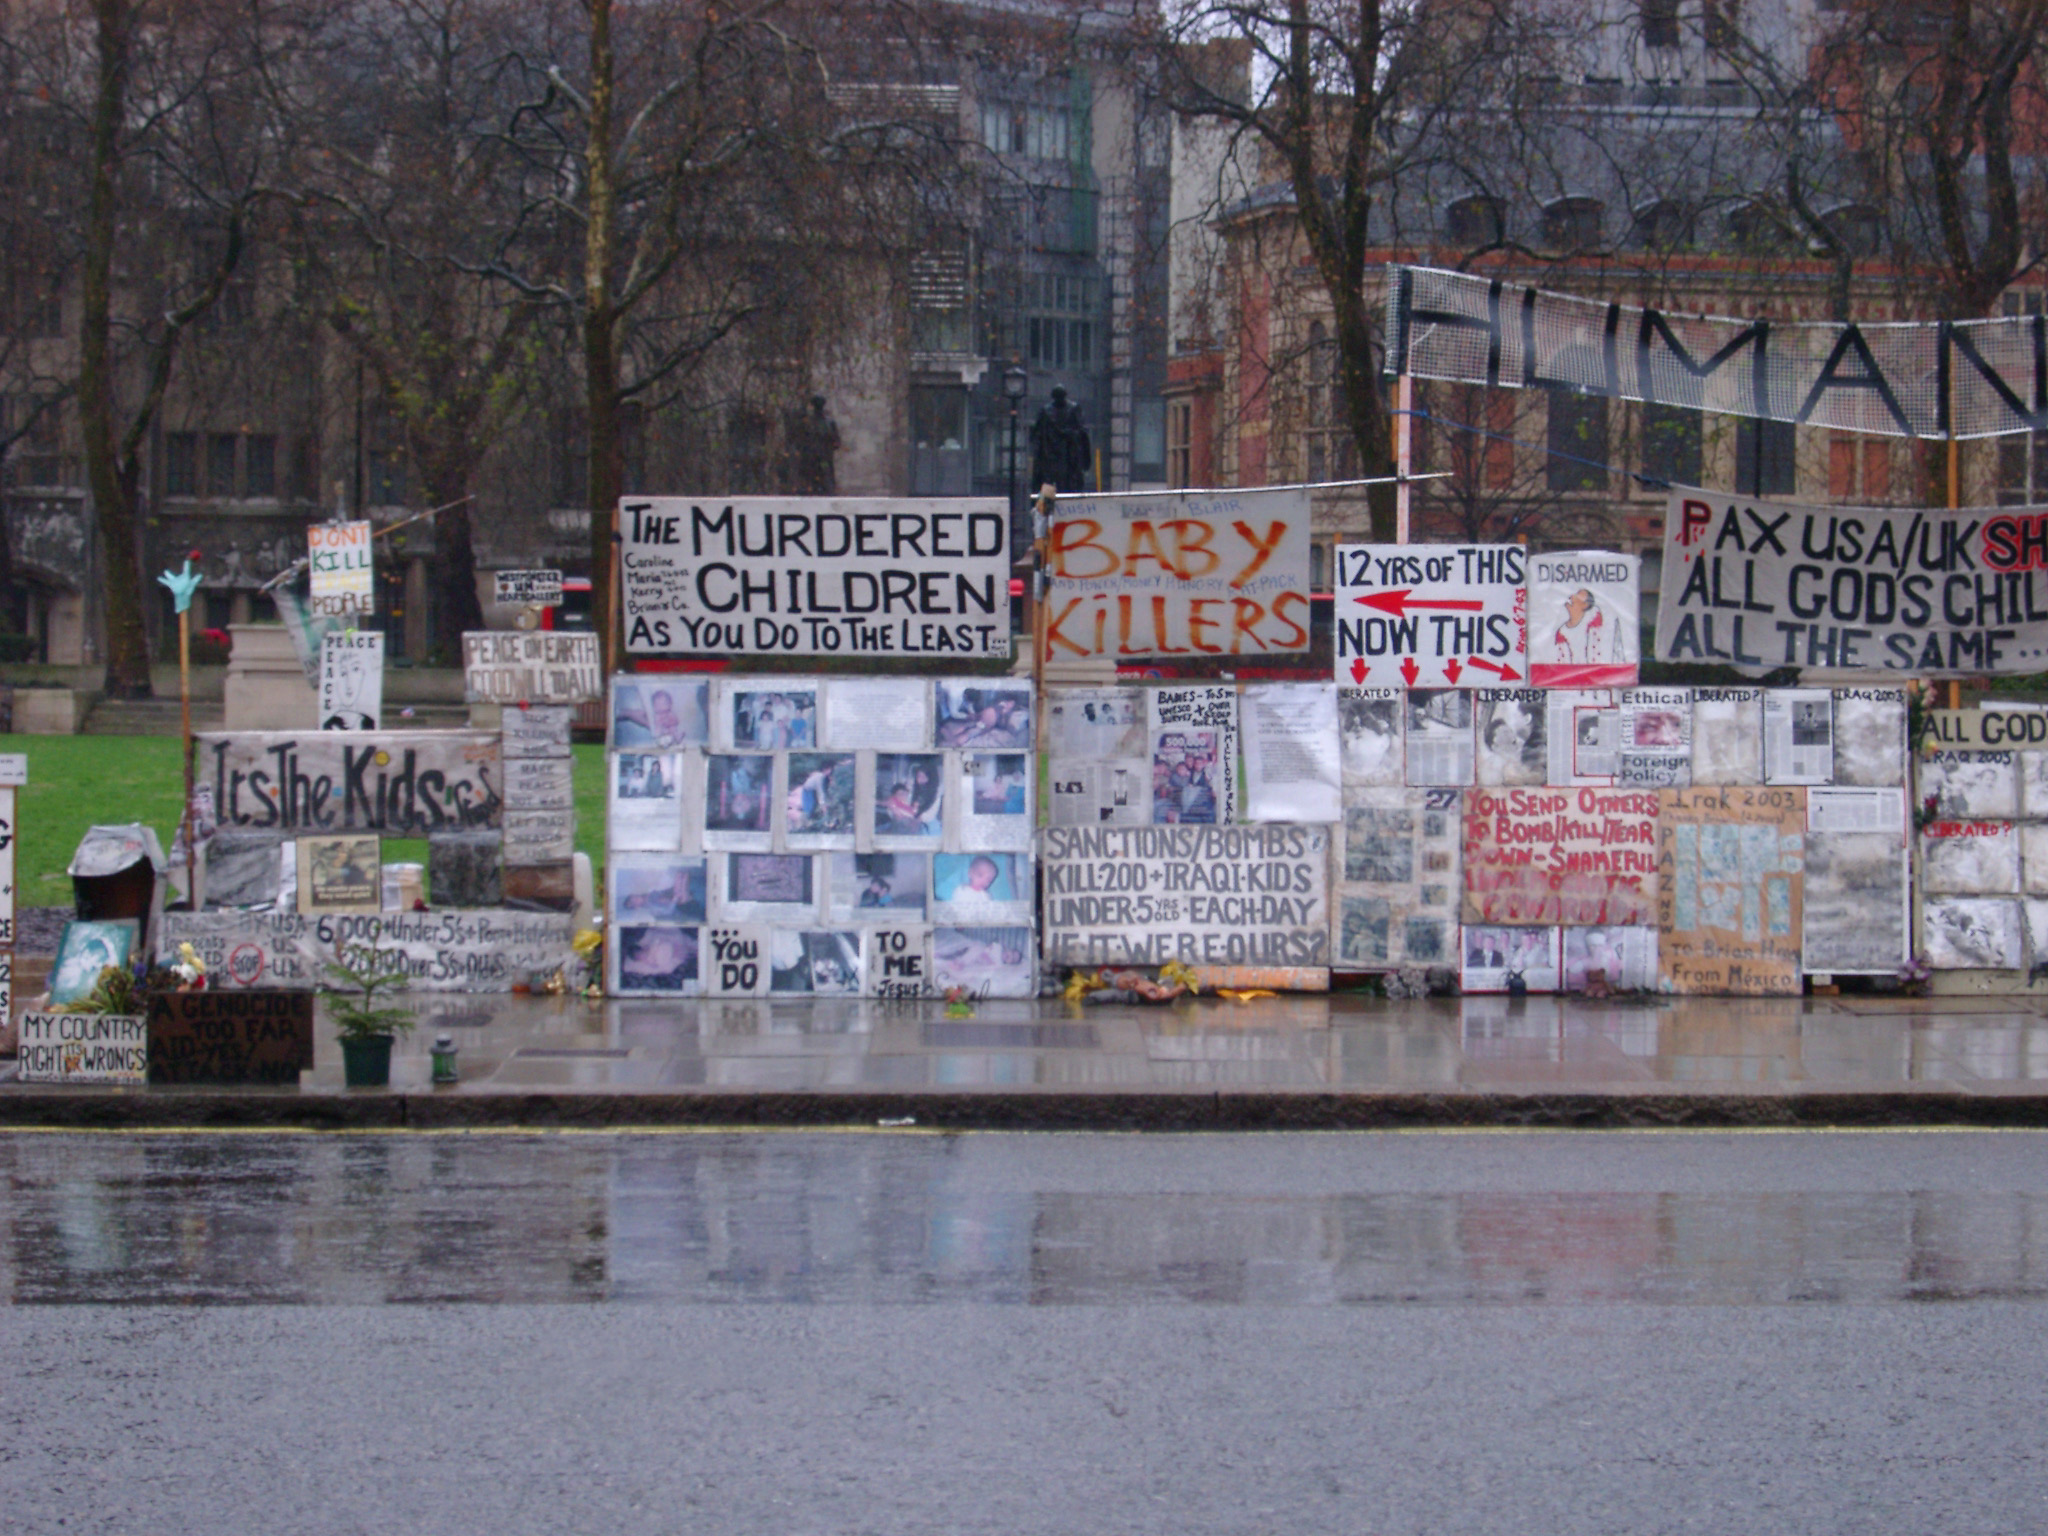 Streetside placards in a demonstration in central London on a wet rainy day